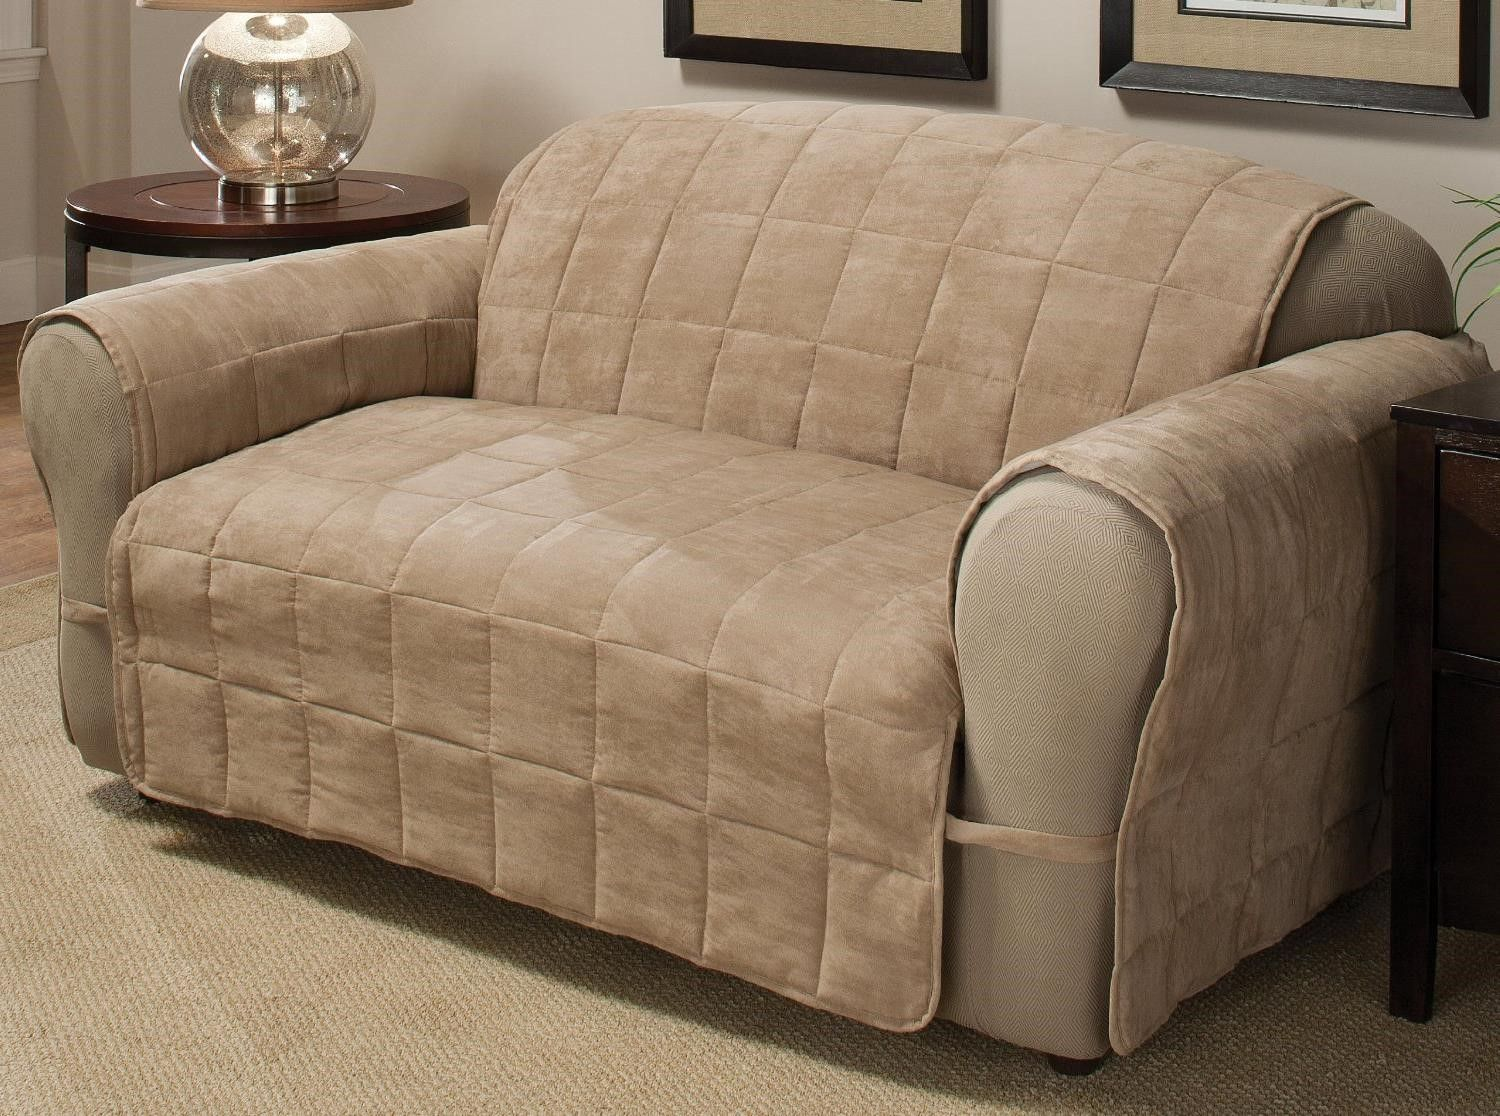 Leather Sofa Covers Ready Made Uk Leather Sofa Covers Cushions On Sofa Leather Couch Covers